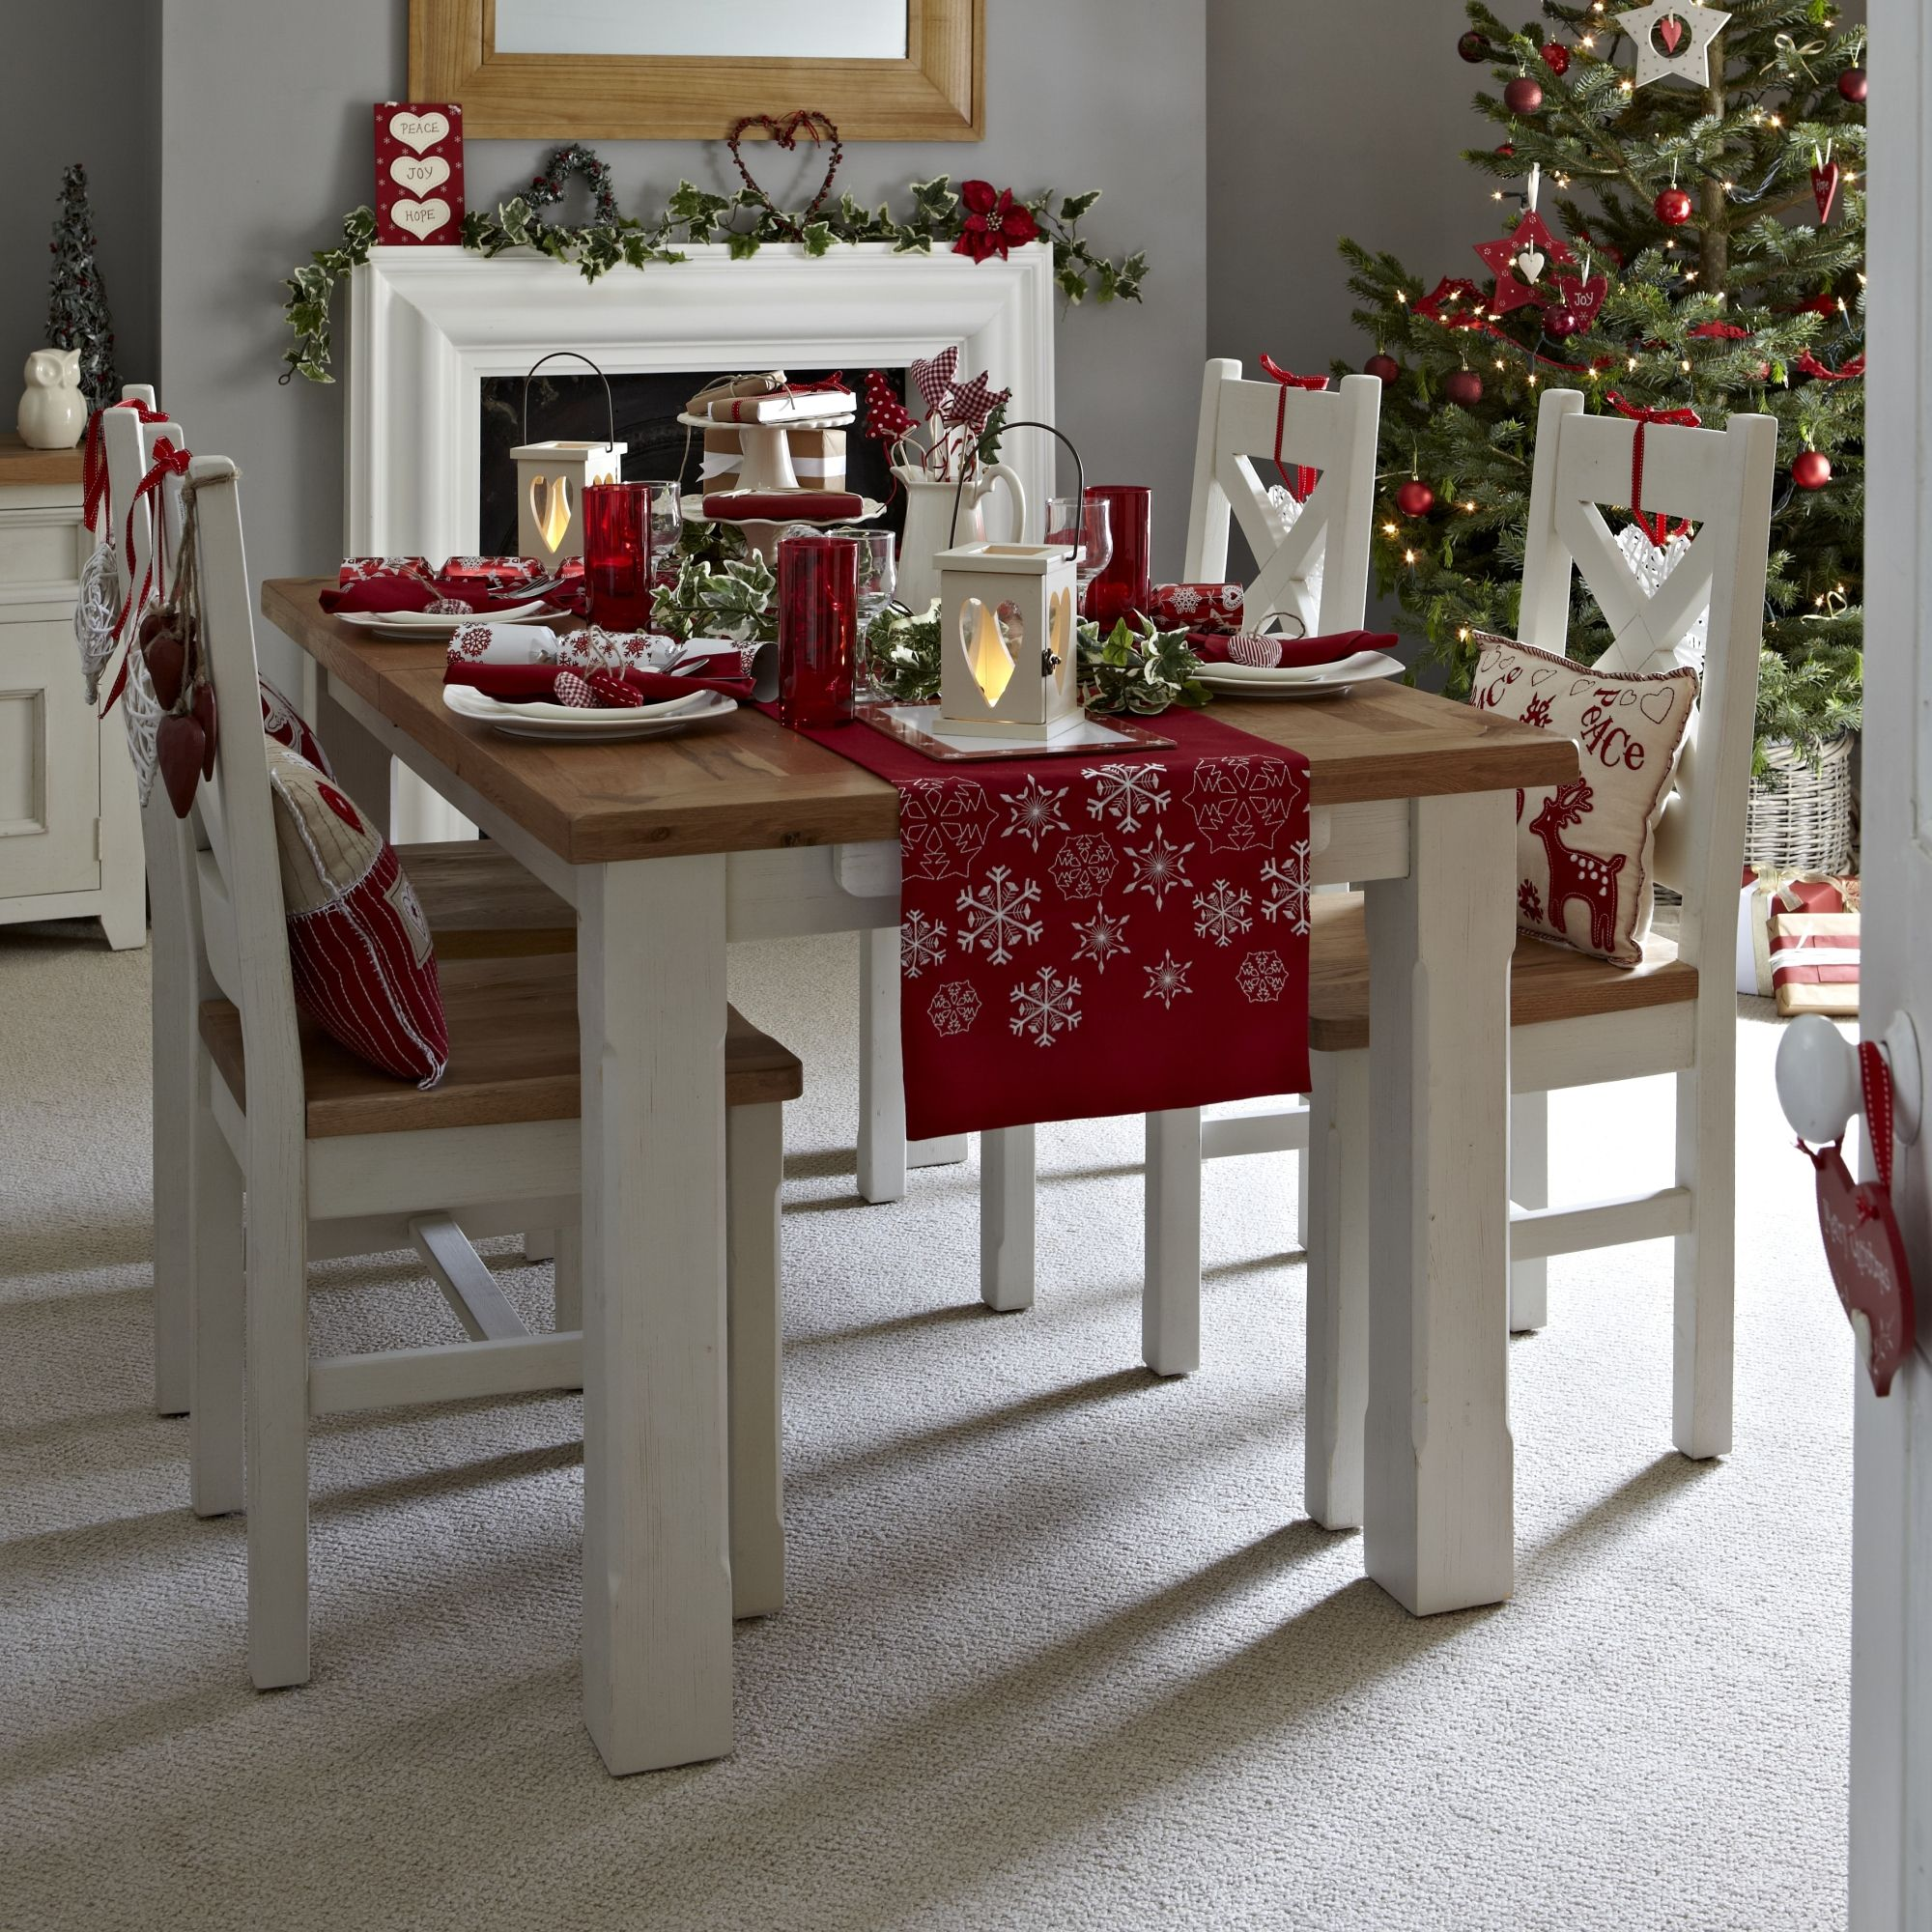 Fine Dining This Christmas Interior Diningroom All Furniture Accessories Sup Christmas Dining Table Decor Christmas Dining Room Christmas Room Decor